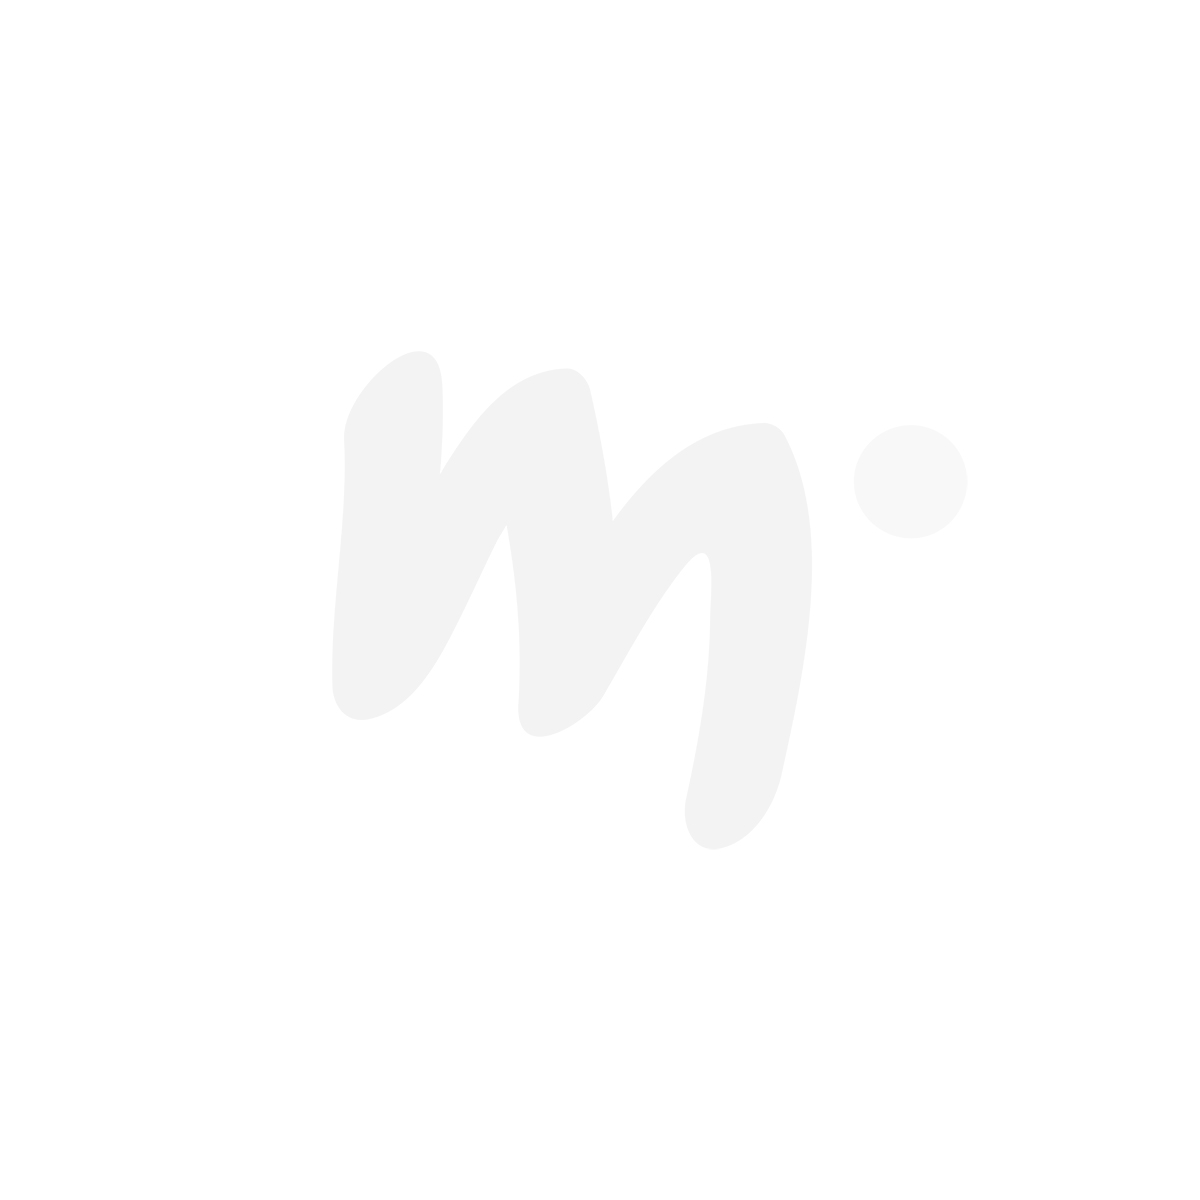 Mauri Kunnas Christmas Jigsaw Puzzle 500 Pieces